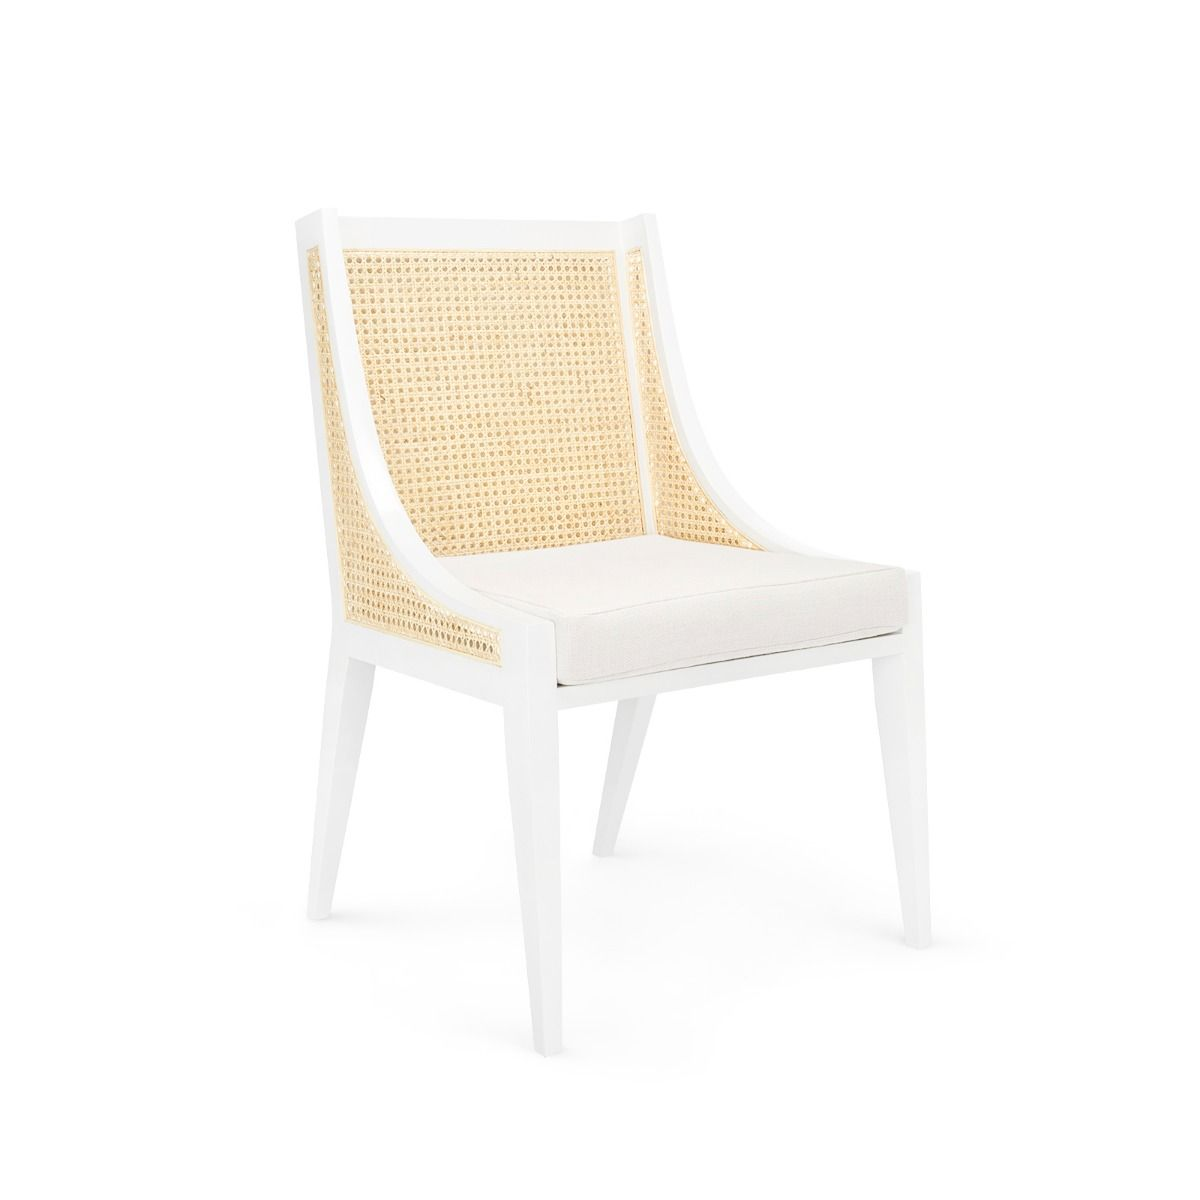 Bungalow 5 - Raleigh Armchair - White